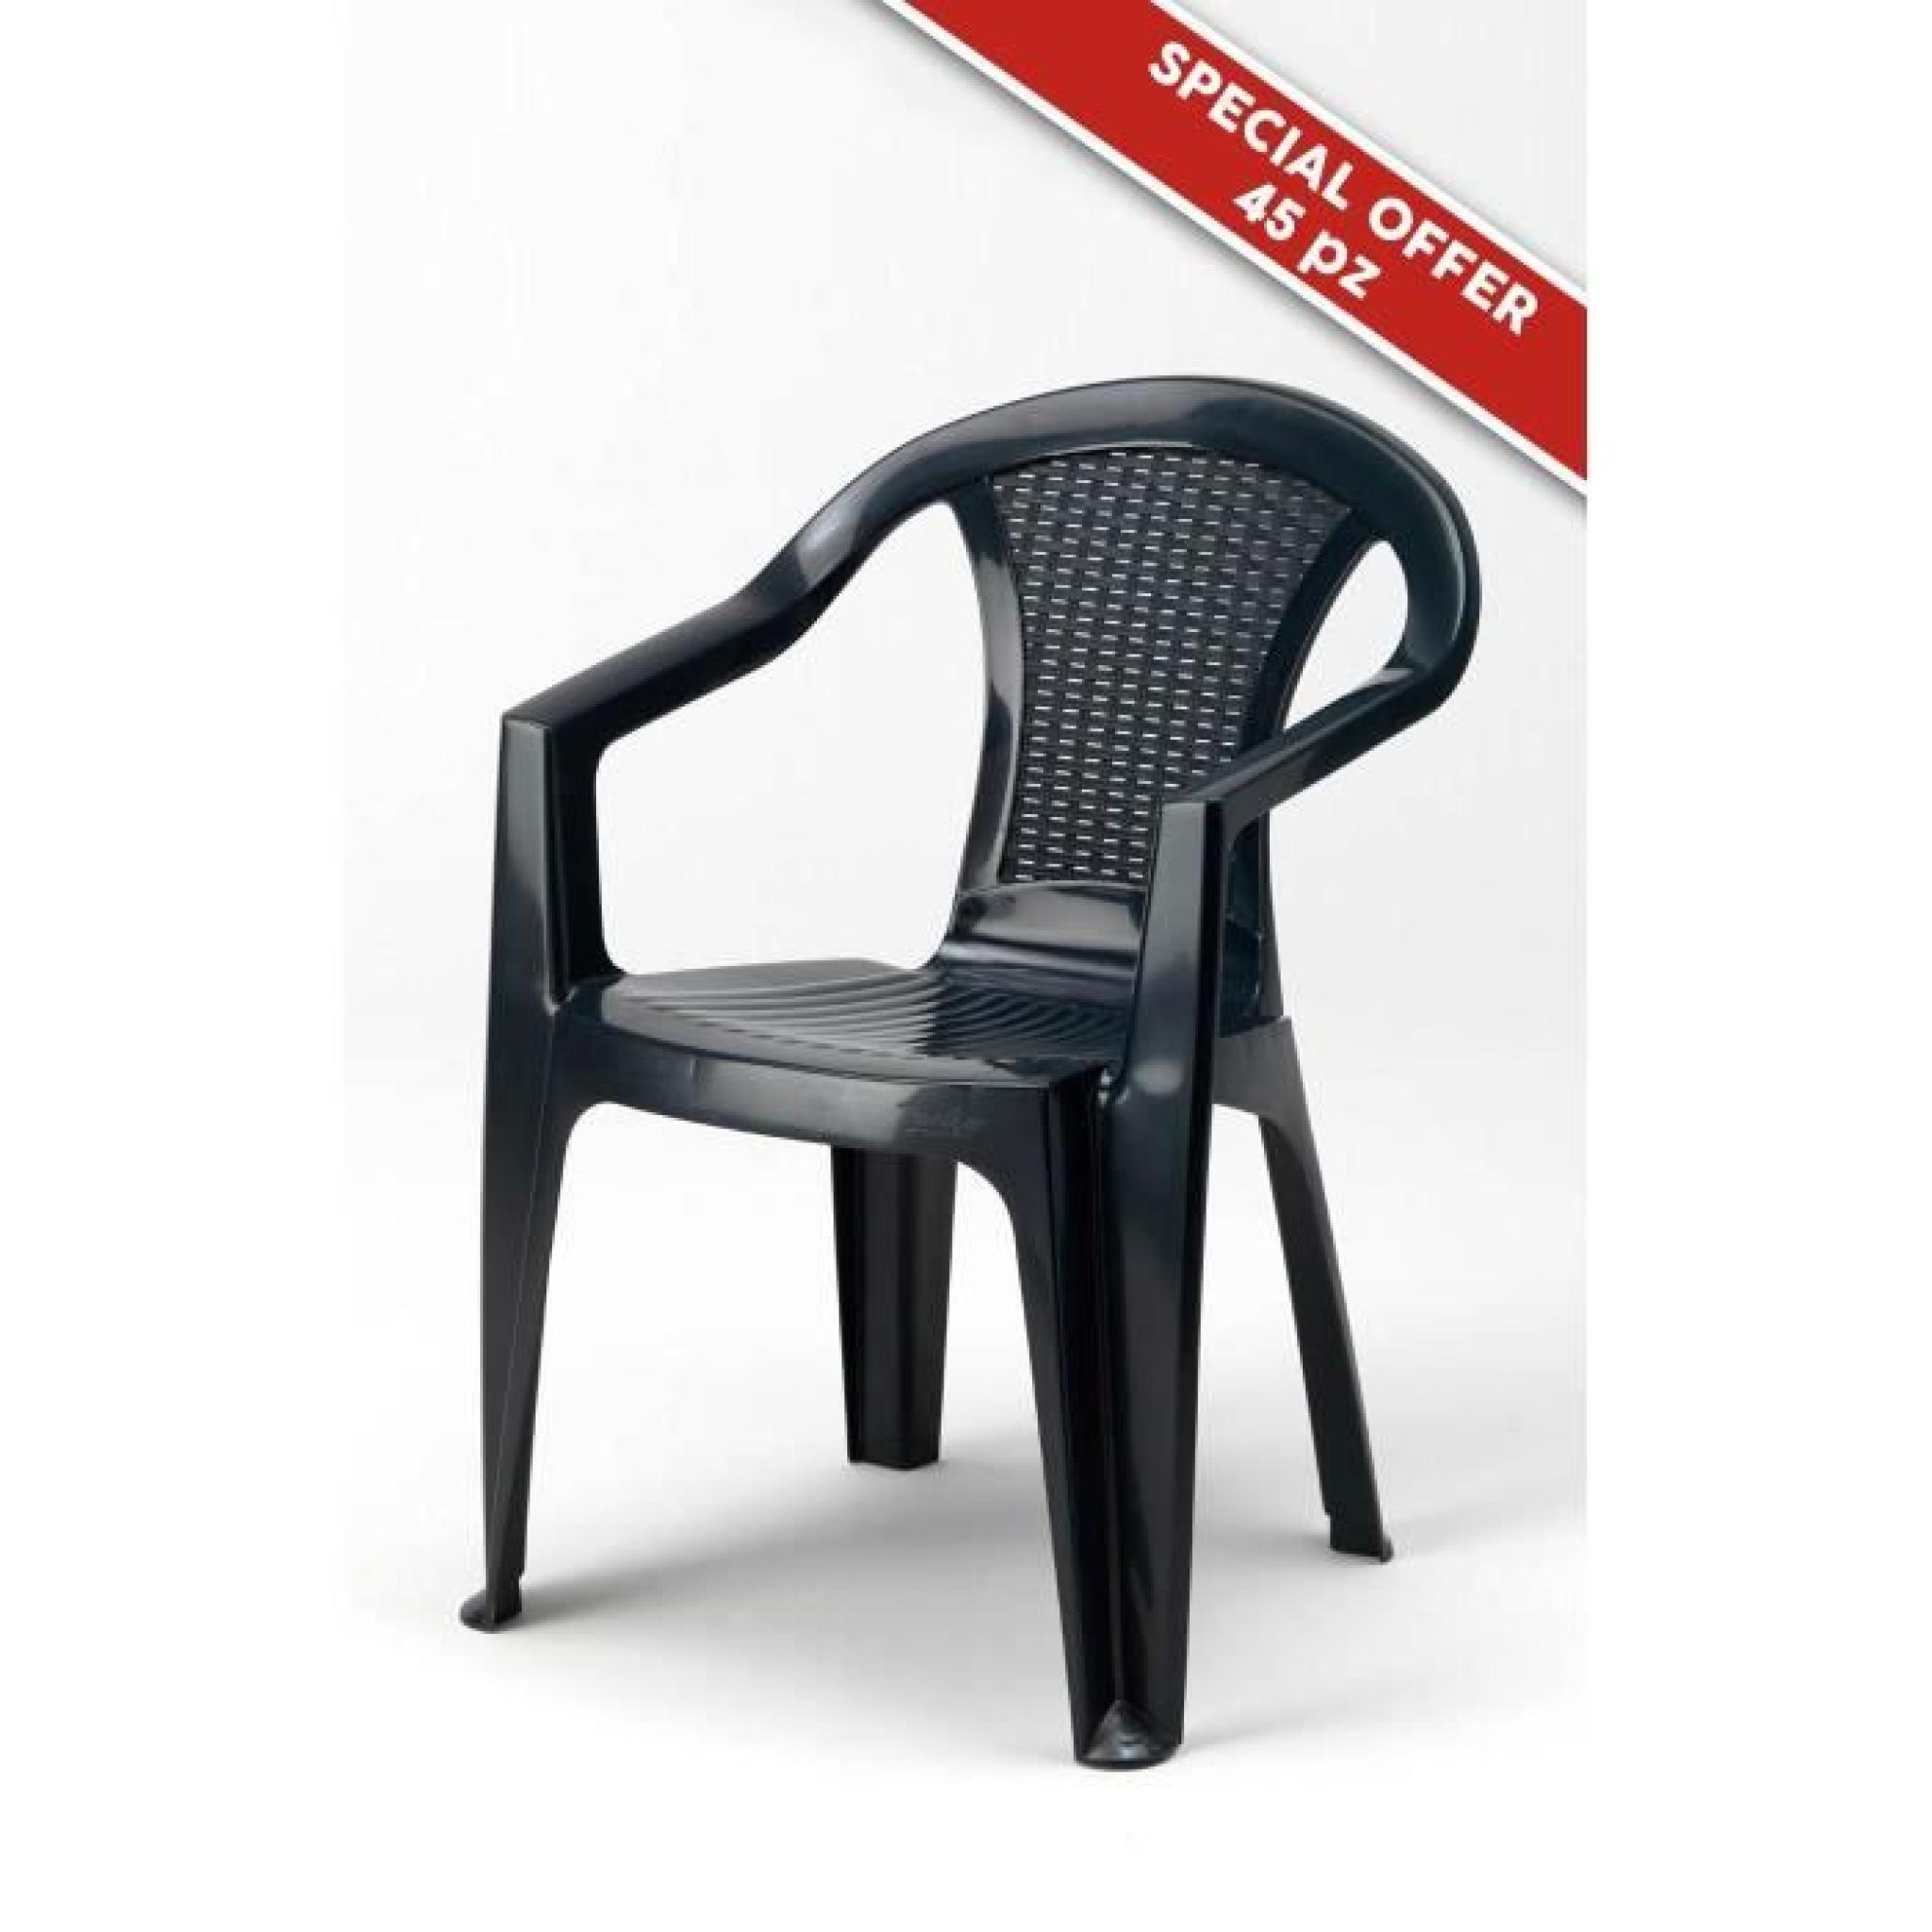 Chaises Anthracite Chaises Anthracite En Poly Rotin Plastique Resine